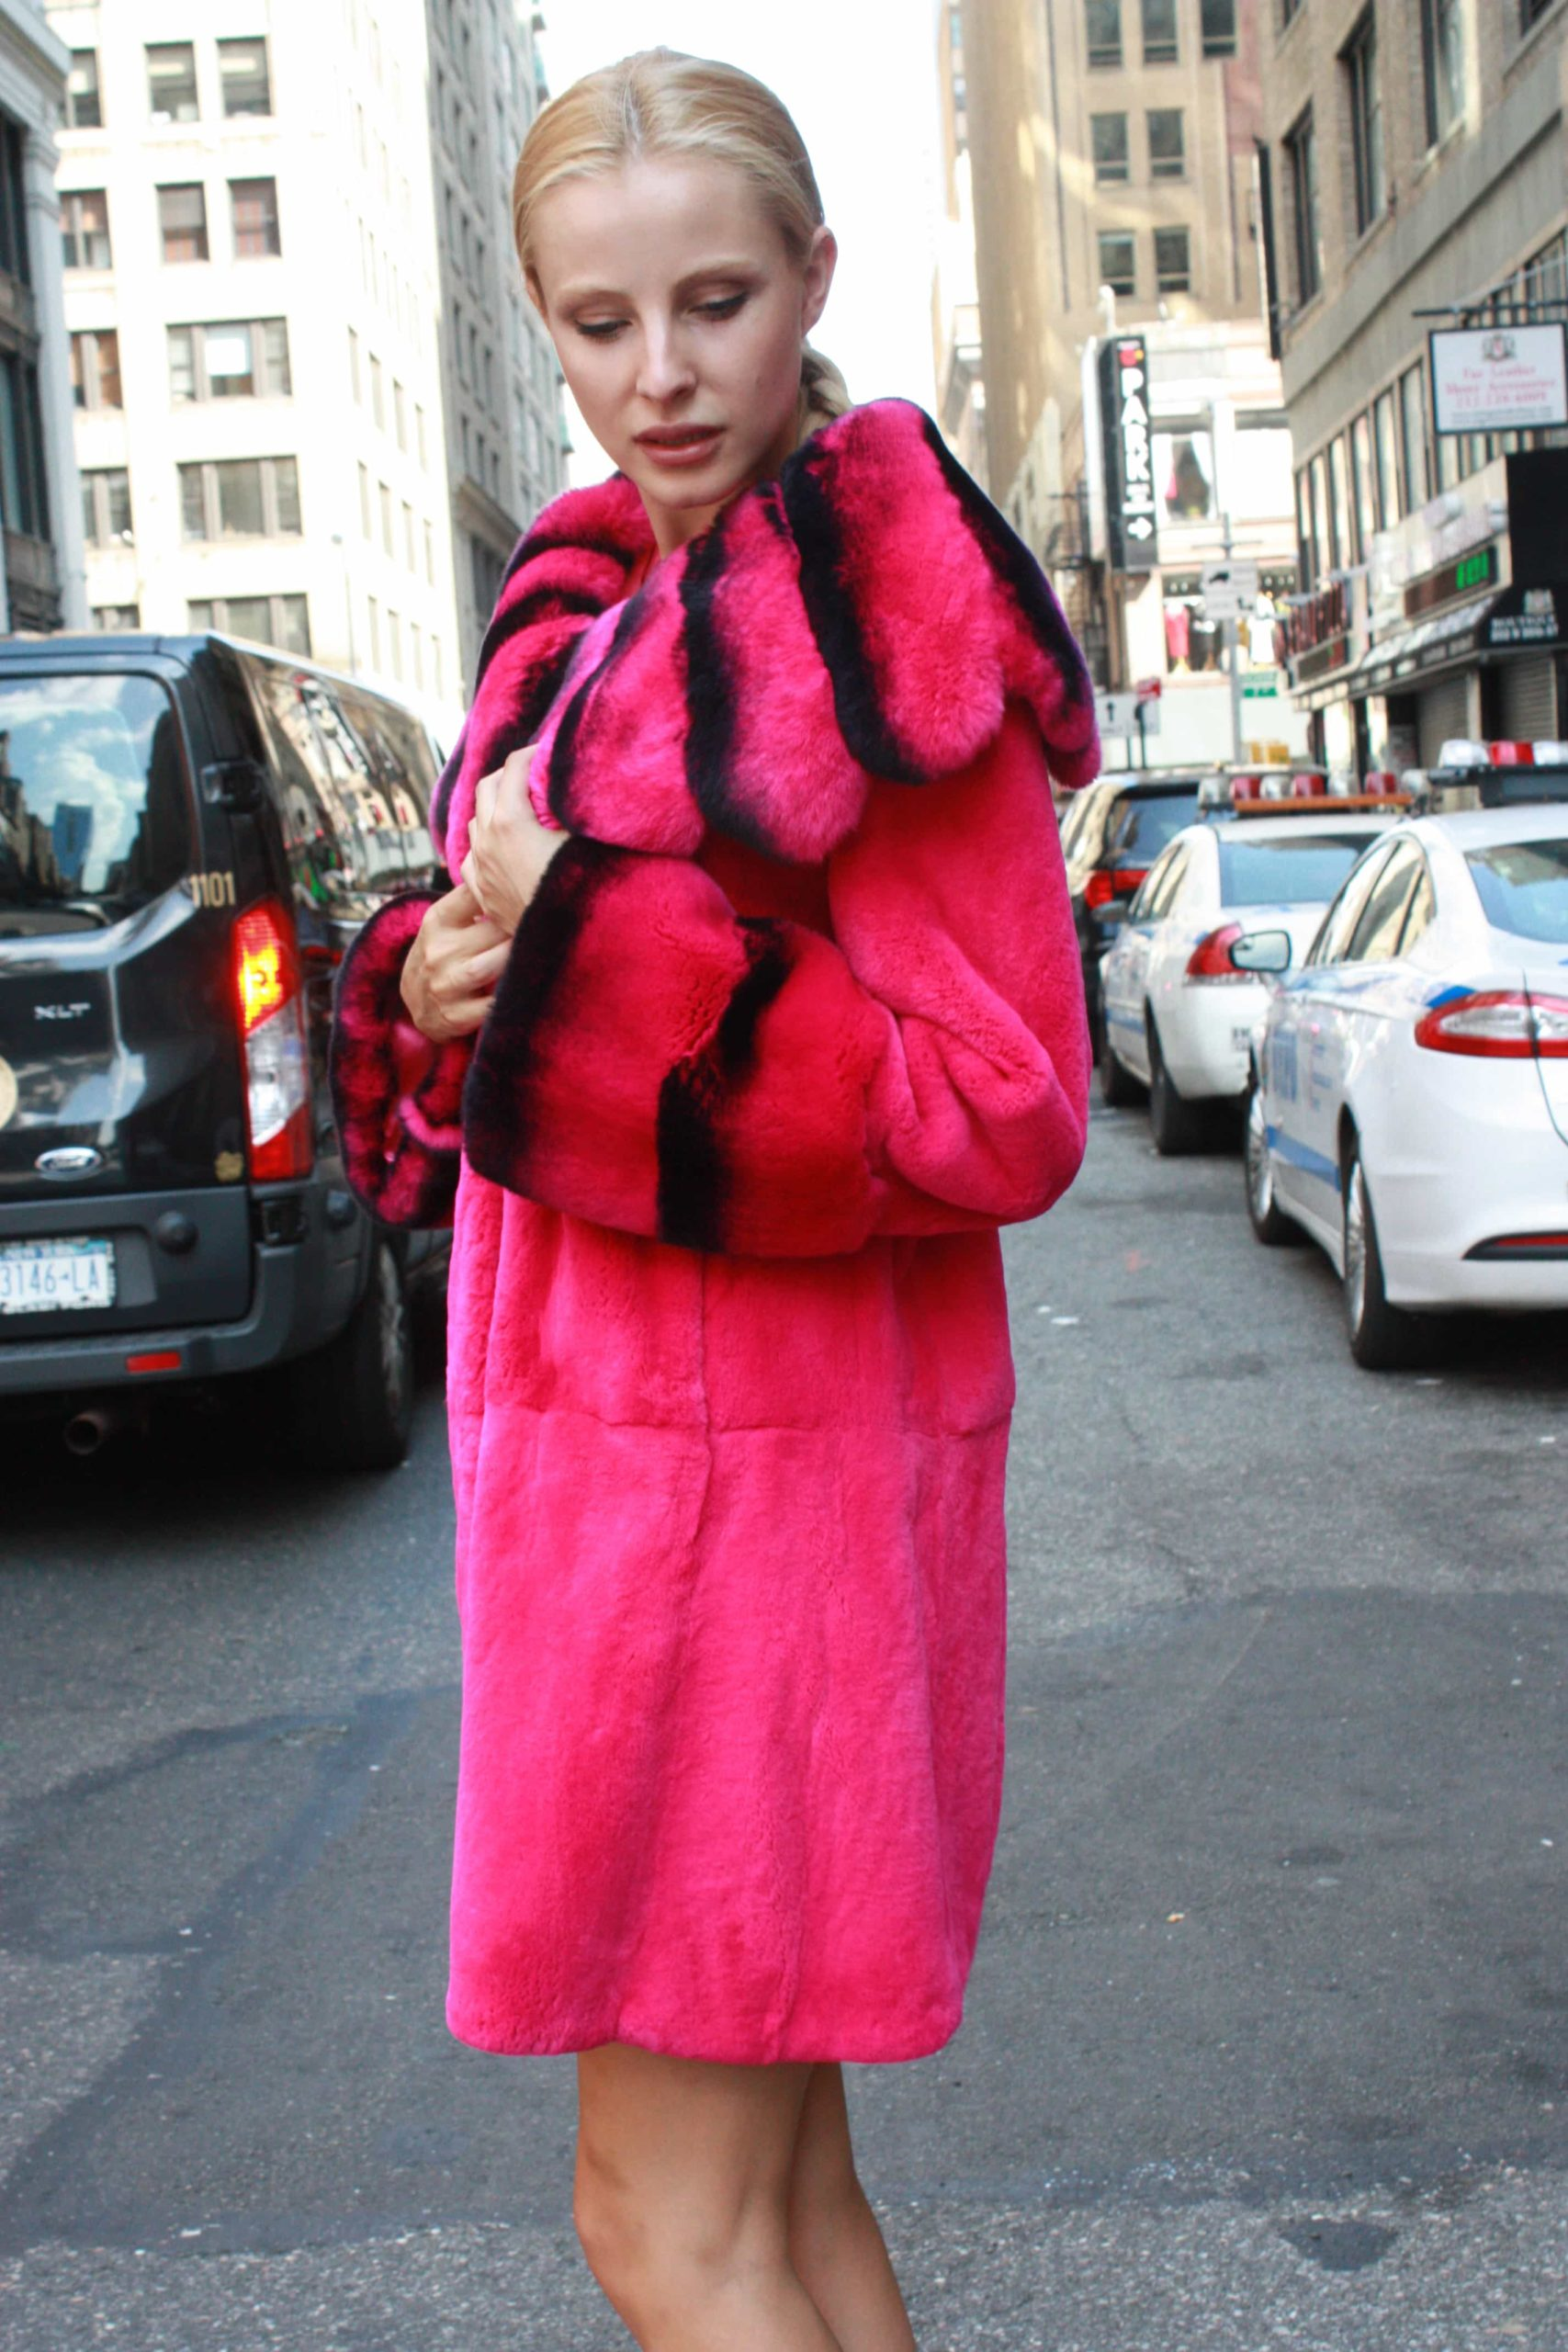 Marc Kaufman Furs presents a fuchsia rex rabbit fur stroller with matching chinchilla rex fur collar from Marc Kaufman Furs USA,Fur coats in Argentina, fur coats in Chile, fur coats in Venezuela, fur coats in Australia, fur coats in Belgium,fur coats in Netherlands, fur coats in Norway,fur coats in Sweden,fur coats in Dubais,fur coats in Egypt,fur coats in Egypt,fur coats in Kuwait, fur coats in South Africa,fur coats in Tunisia,fur coats in the Falklands